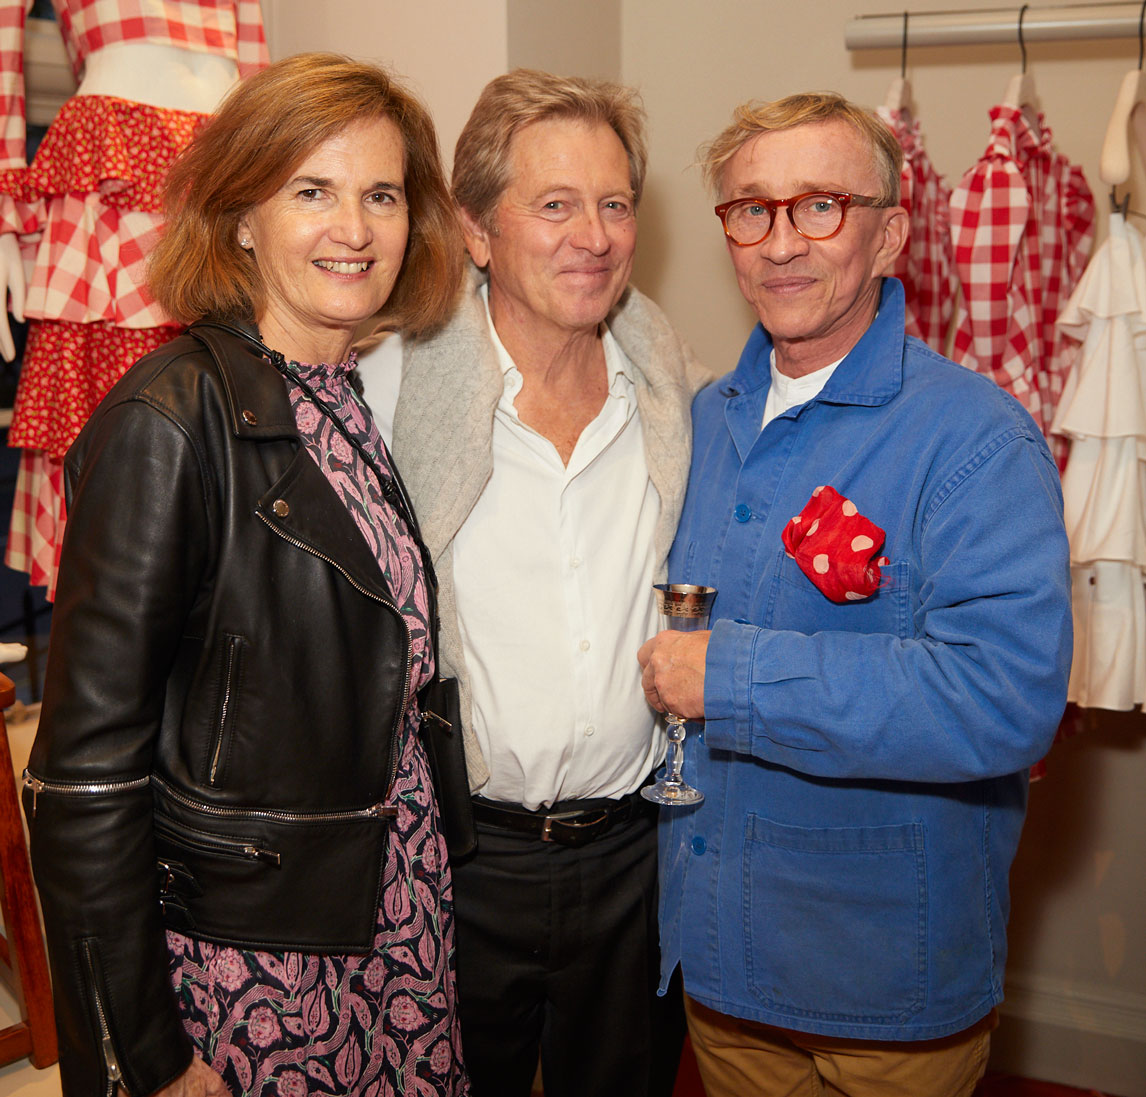 Catherine and John Pawson and Jasper Conran at the Interiors launch at MATCHESFASHION.COM in London